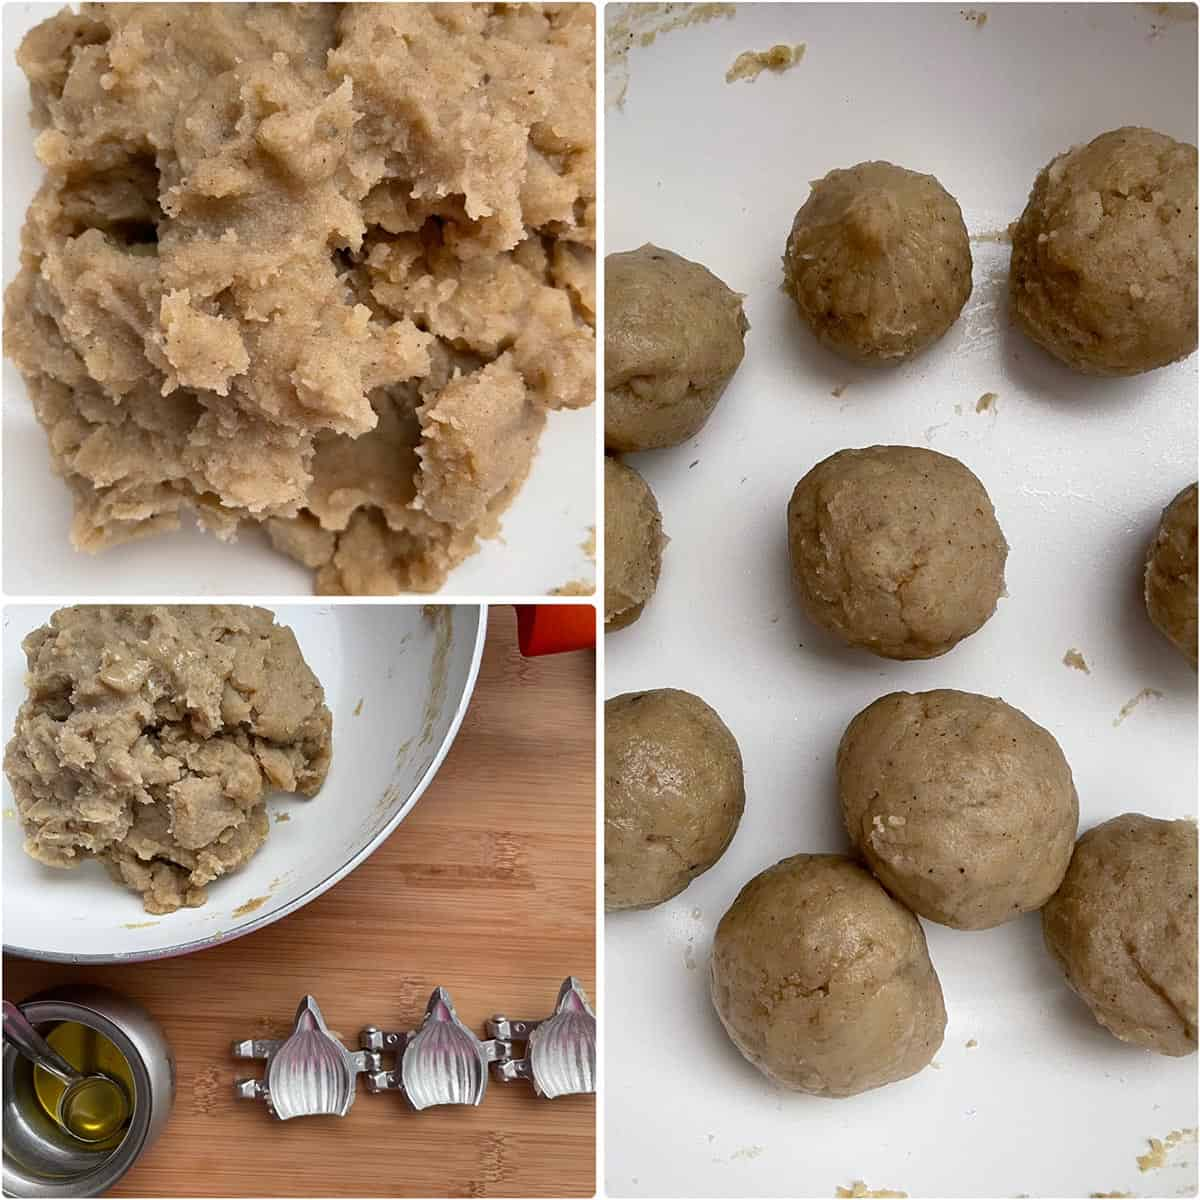 Cooked mixture divided into balls